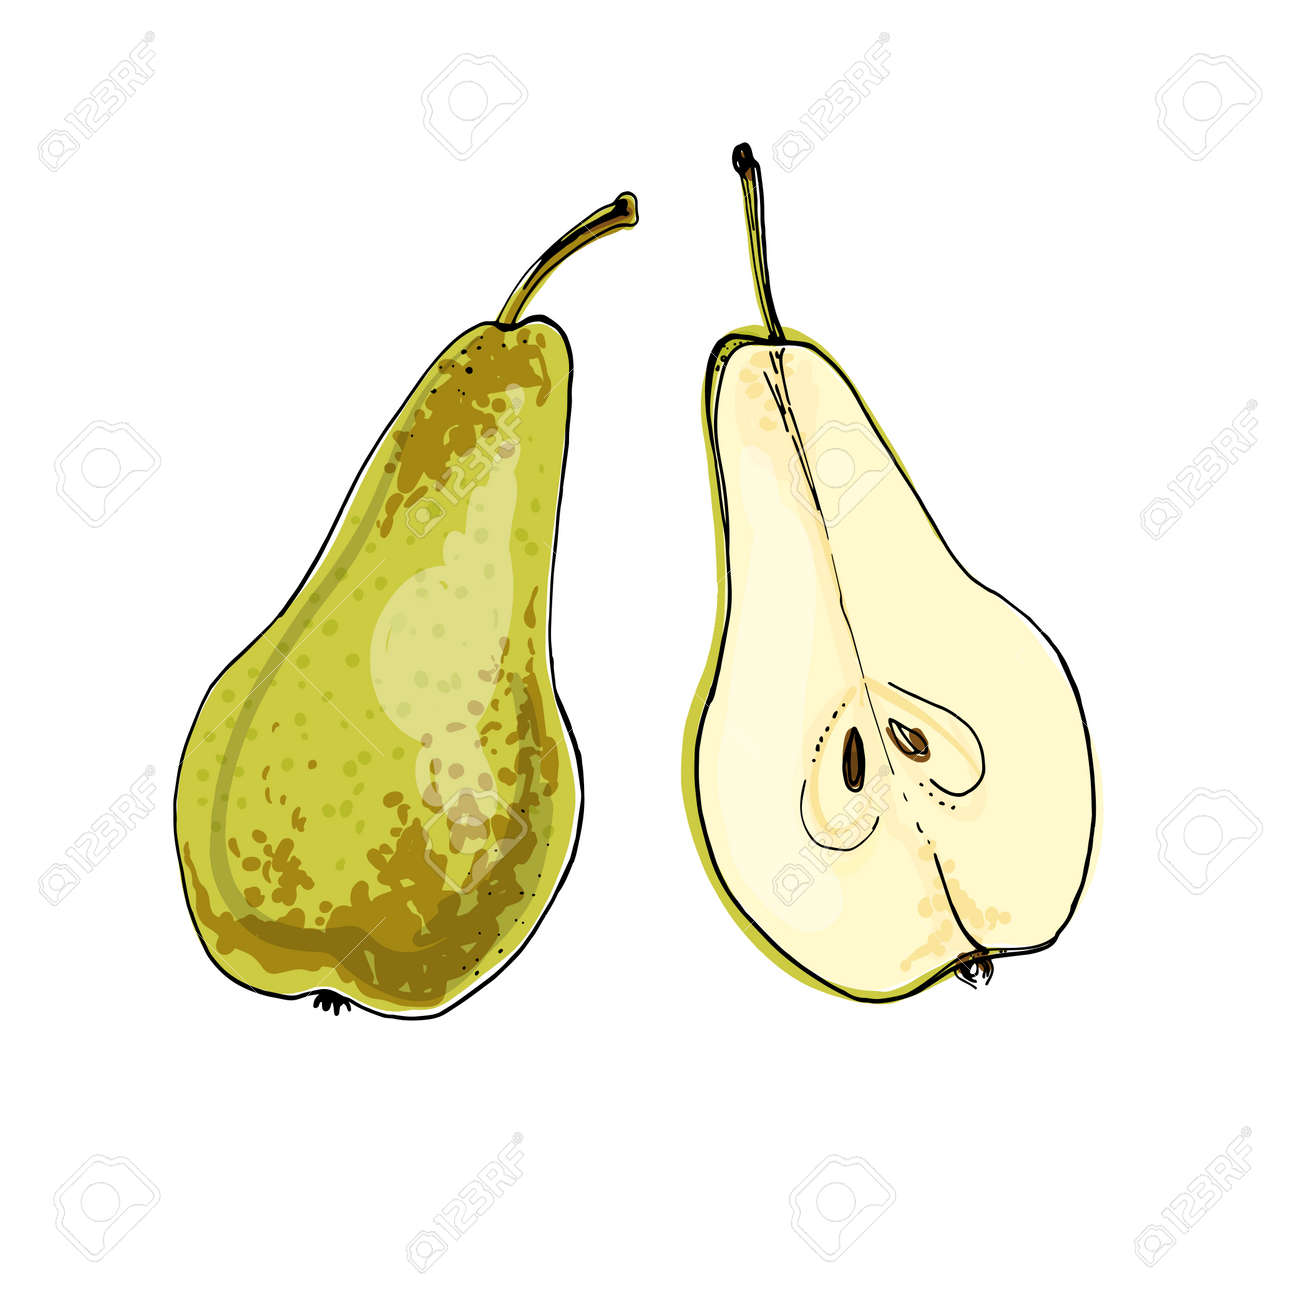 Pear Vector food icons of fruits. Colored sketch of food products. Pear Conference - 170860694